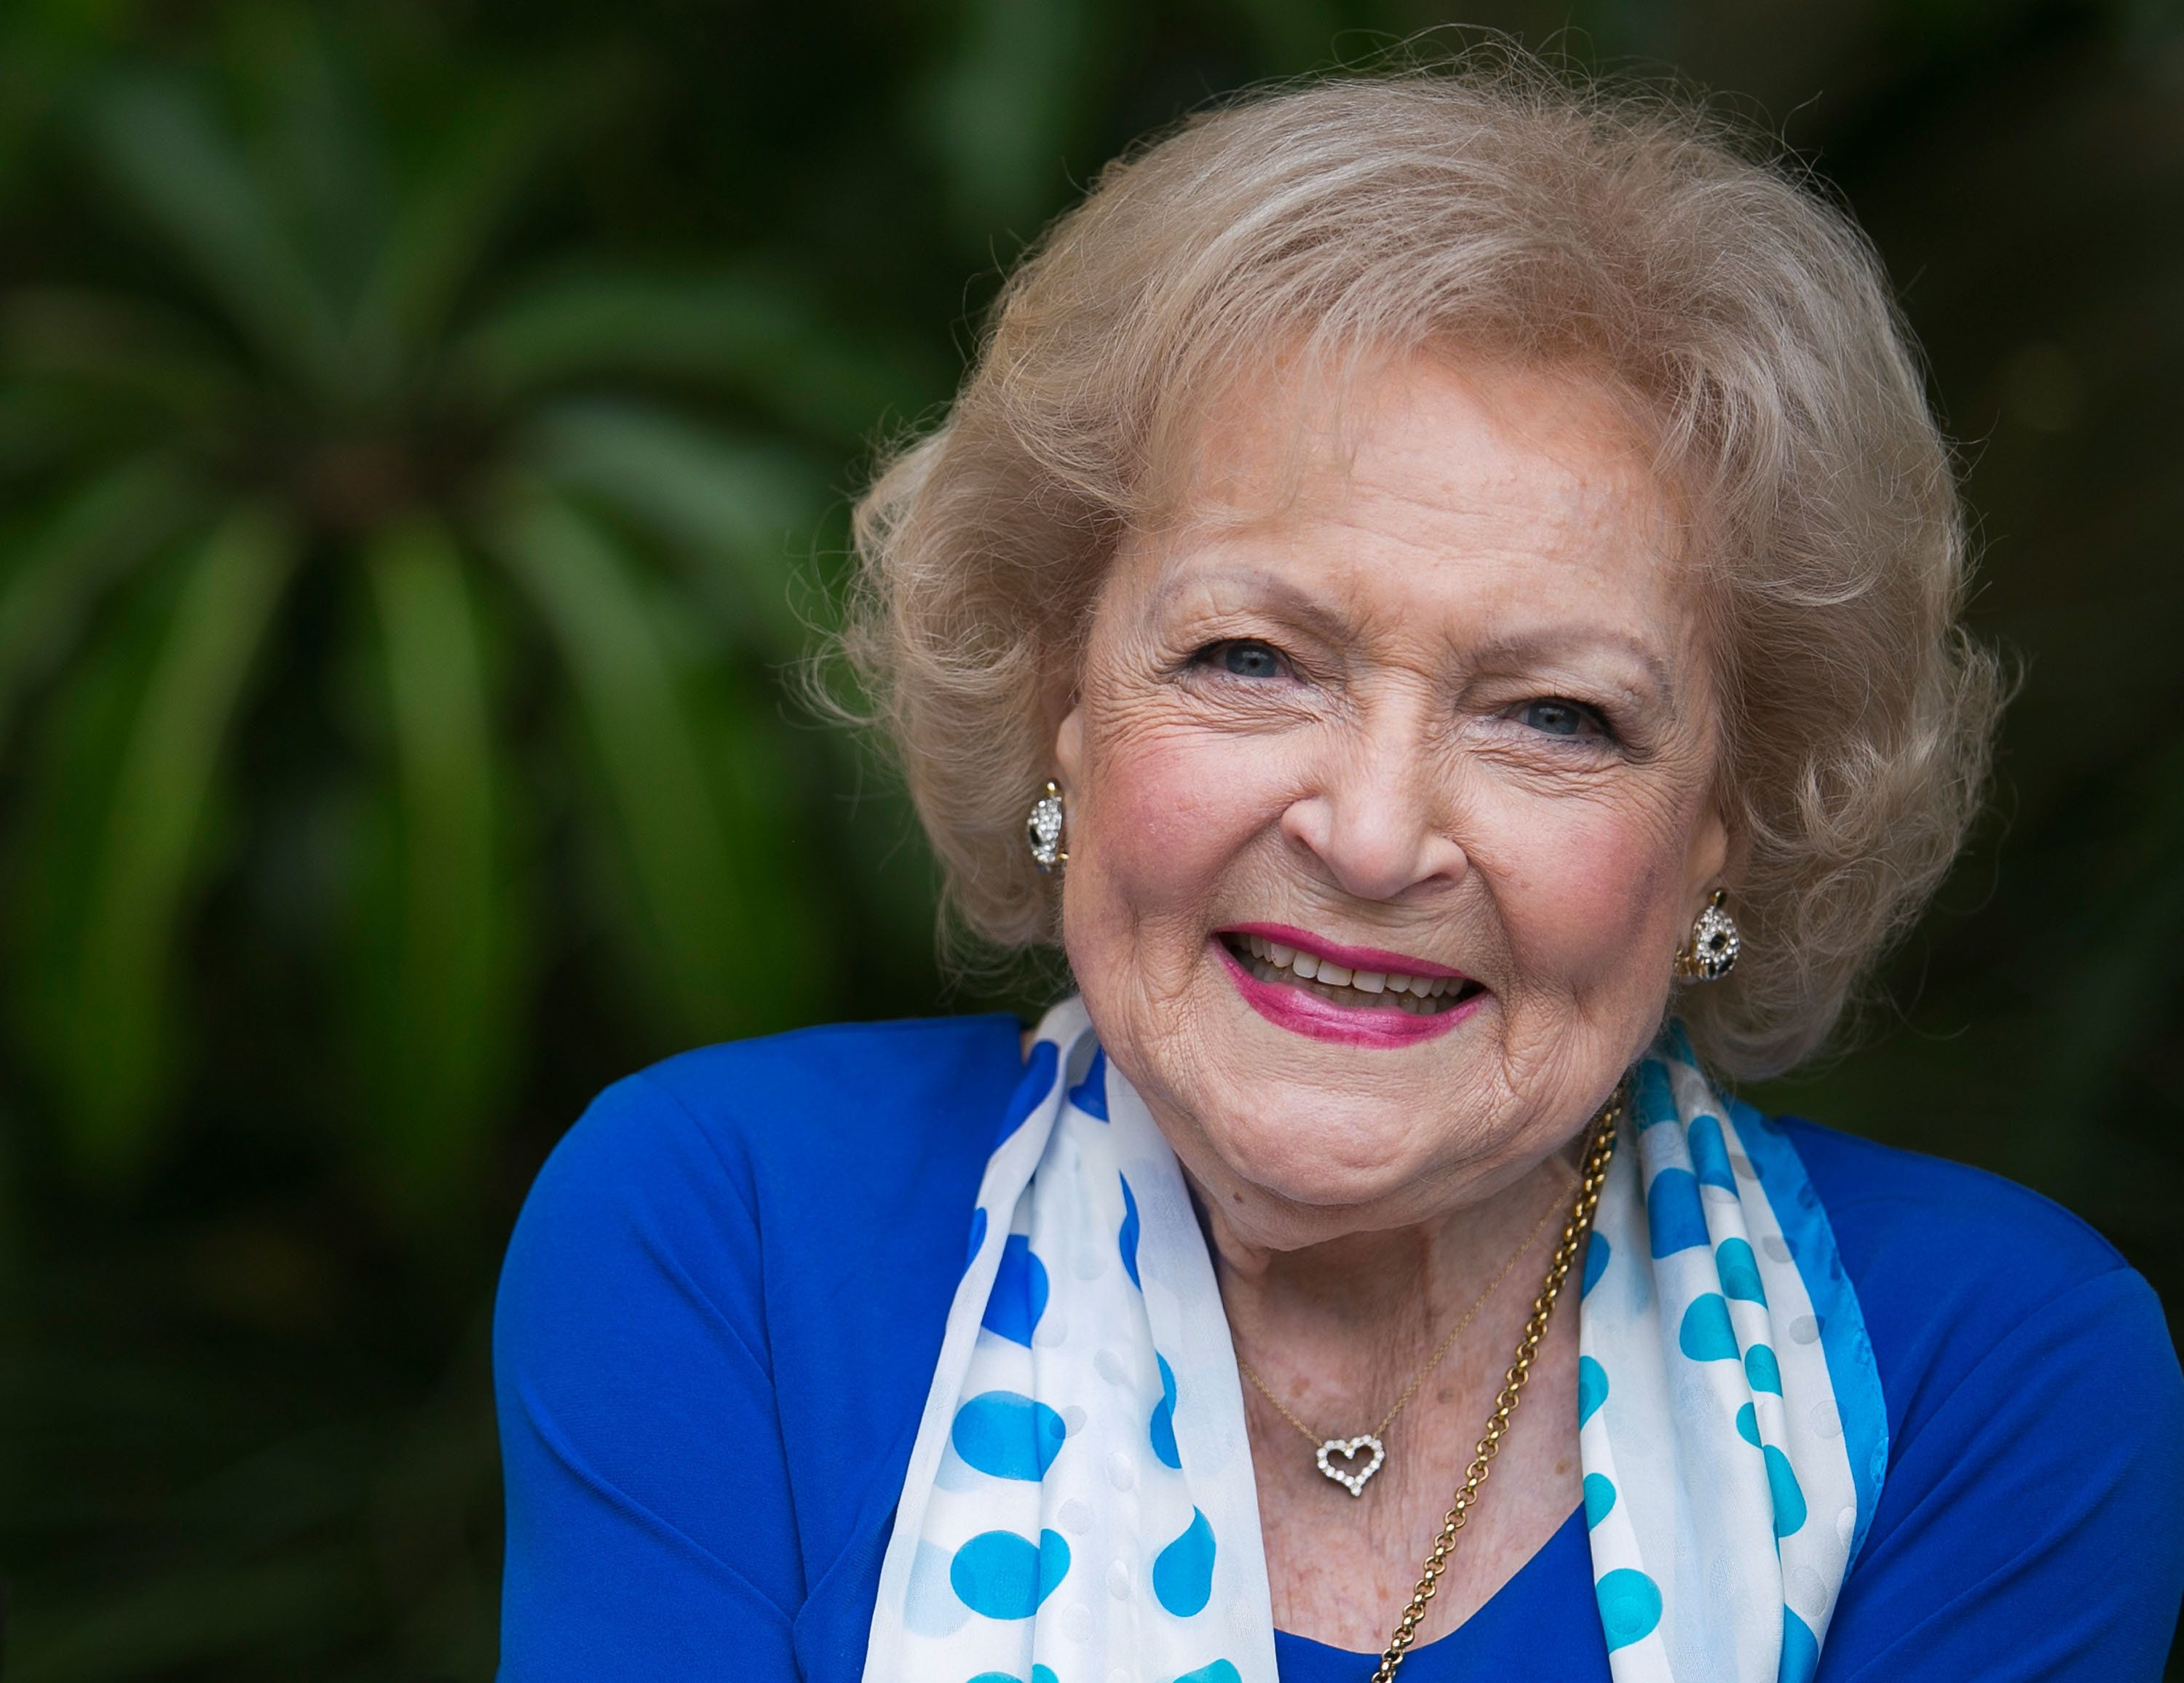 LOS ANGELES, CA - JUNE 11:  Actress Betty White attends the media preview for Greater Los Angeles Zoo Association's Beastly Ball fundraiser at Los Angeles Zoo on June 11, 2015 in Los Angeles, California.  (Photo by Vincent Sandoval/WireImage)